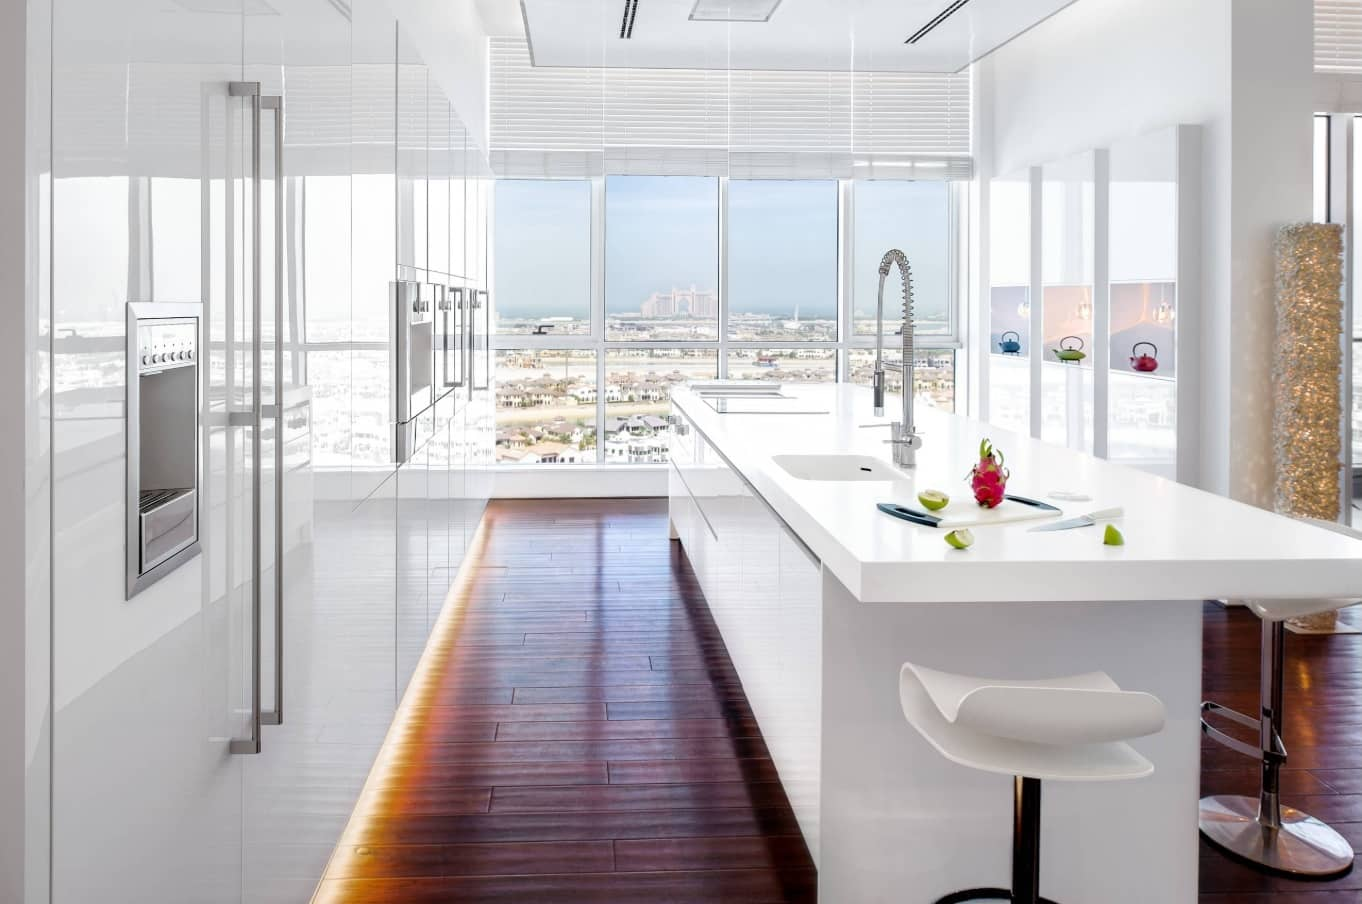 7 Home Collections by Luxury Fashion Brands. Ultramodern kitchen in the penthouse apartment with white glosy facades, backlight and dark wooden floor